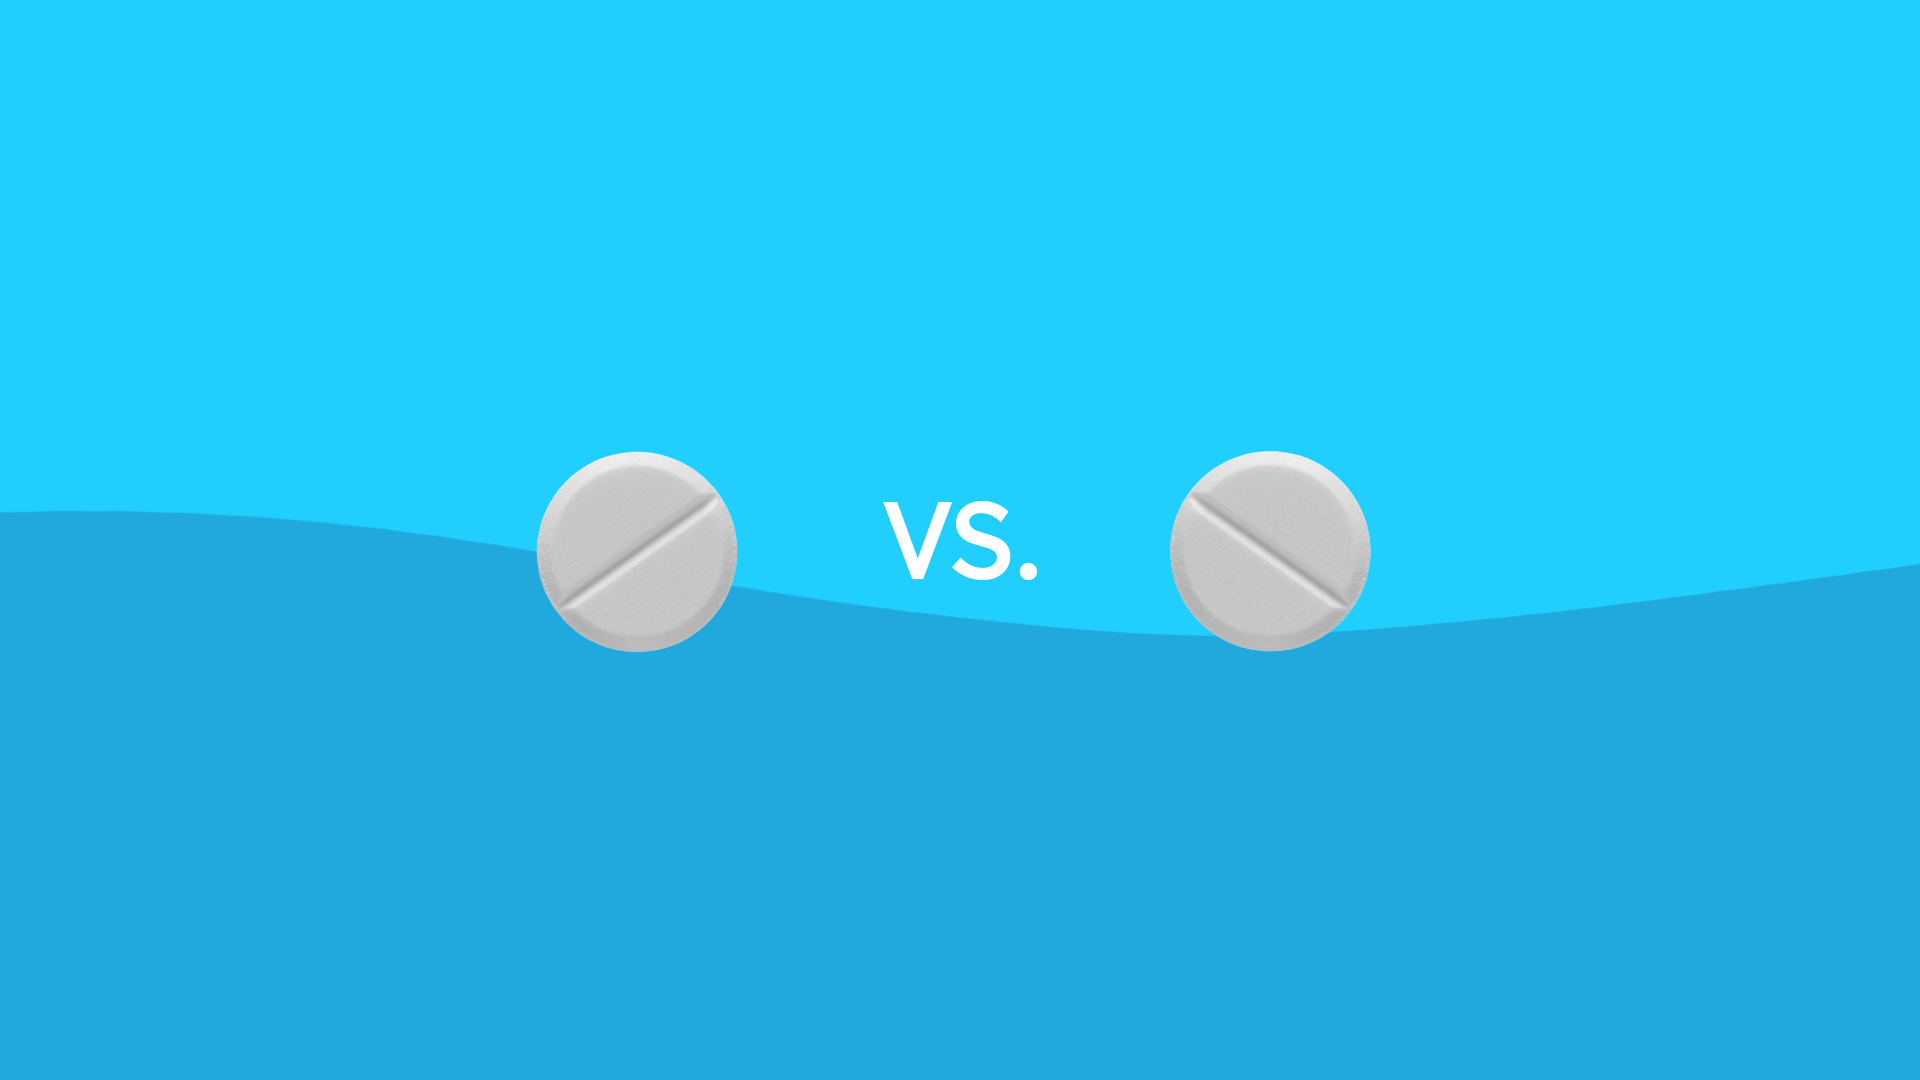 Wellbutrin vs. Adderall: Differences, similarities, and which is better for you